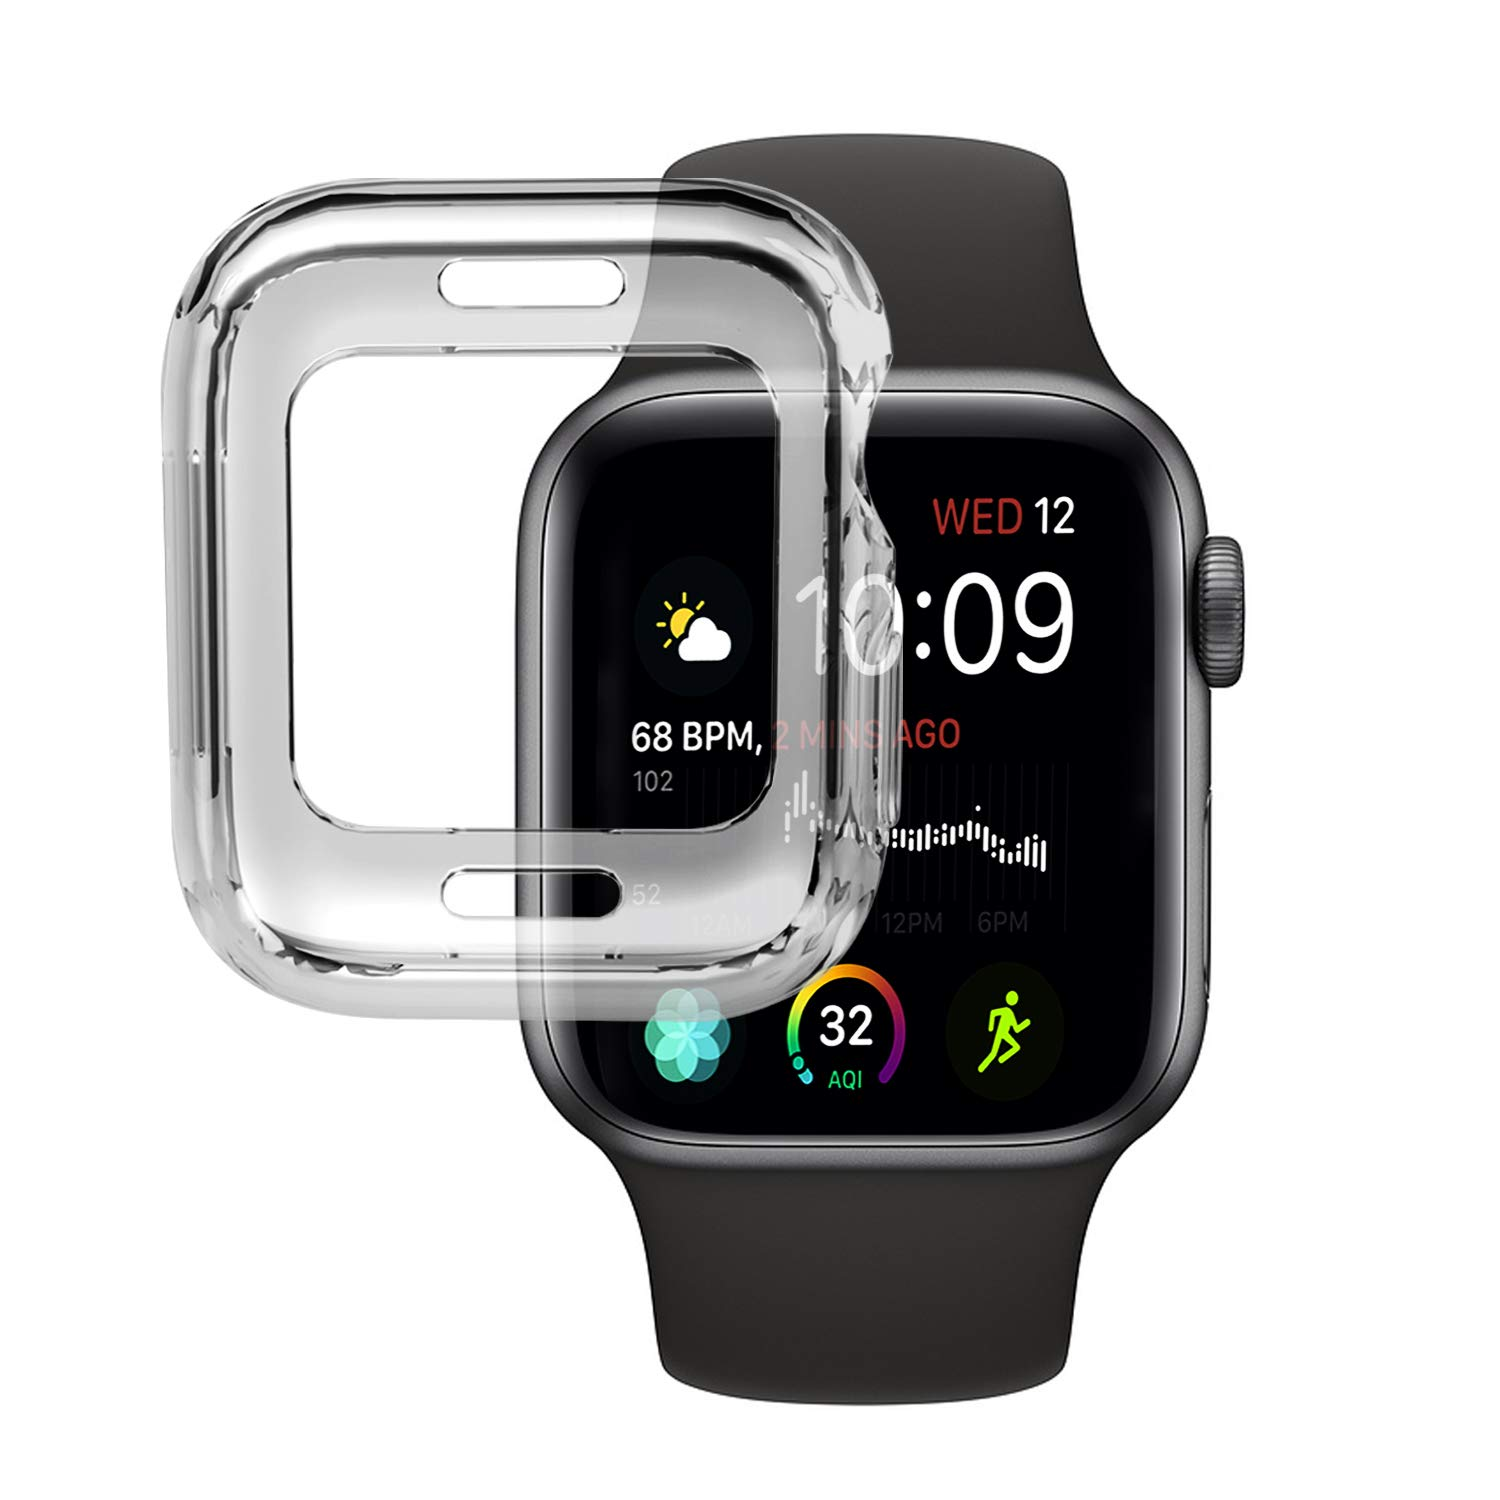 VODKE Compatible with Apple Watch Case Series 4 44mm, Soft TPU Watch Bumper Case Cover Protector Compatible with iWatch Series 4